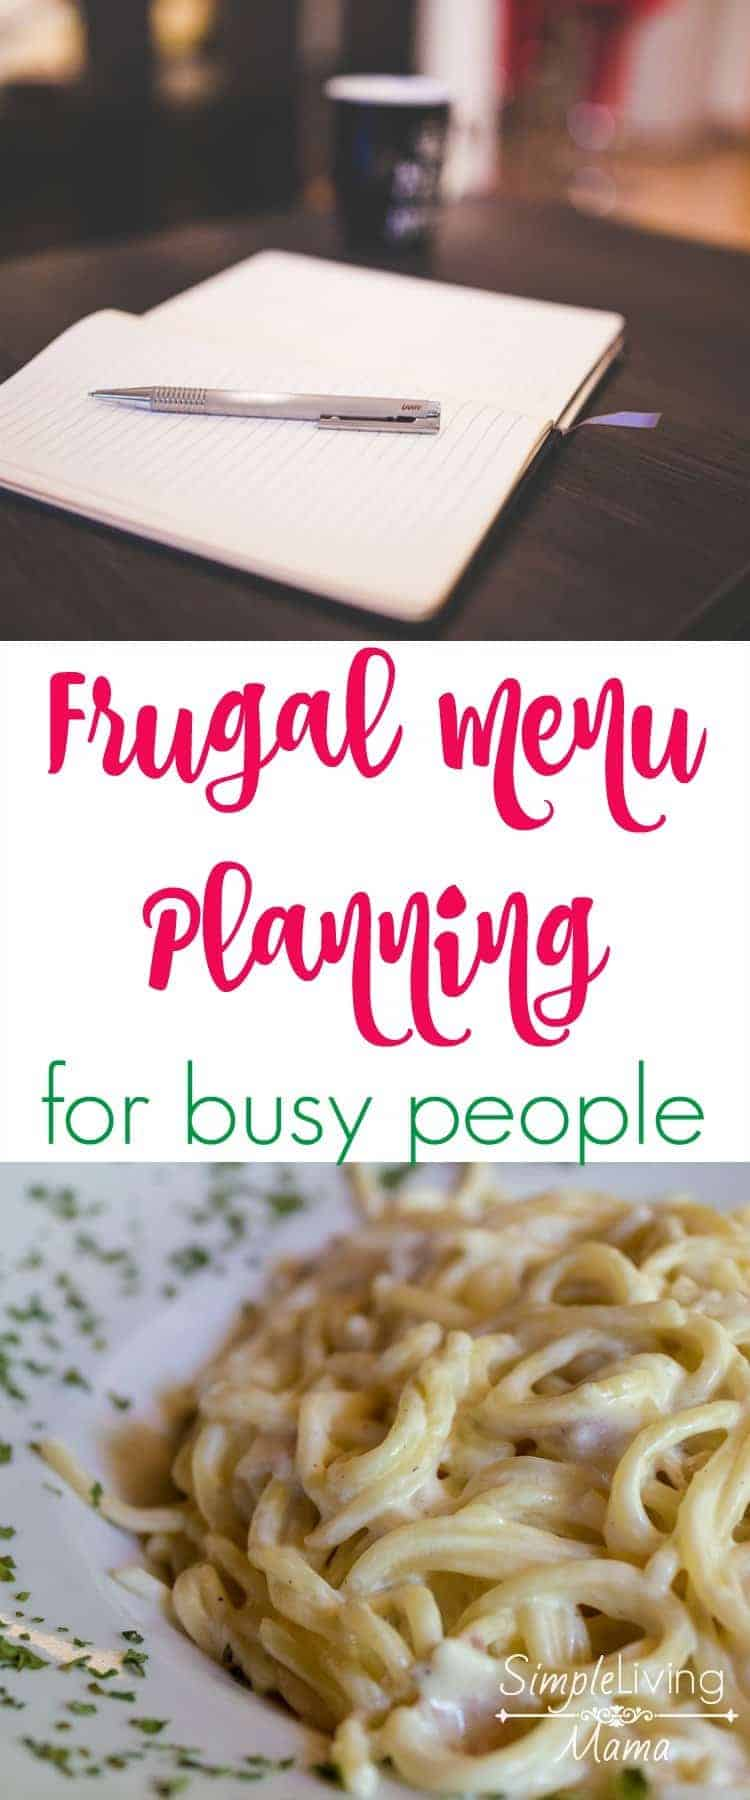 Frugal menu planning